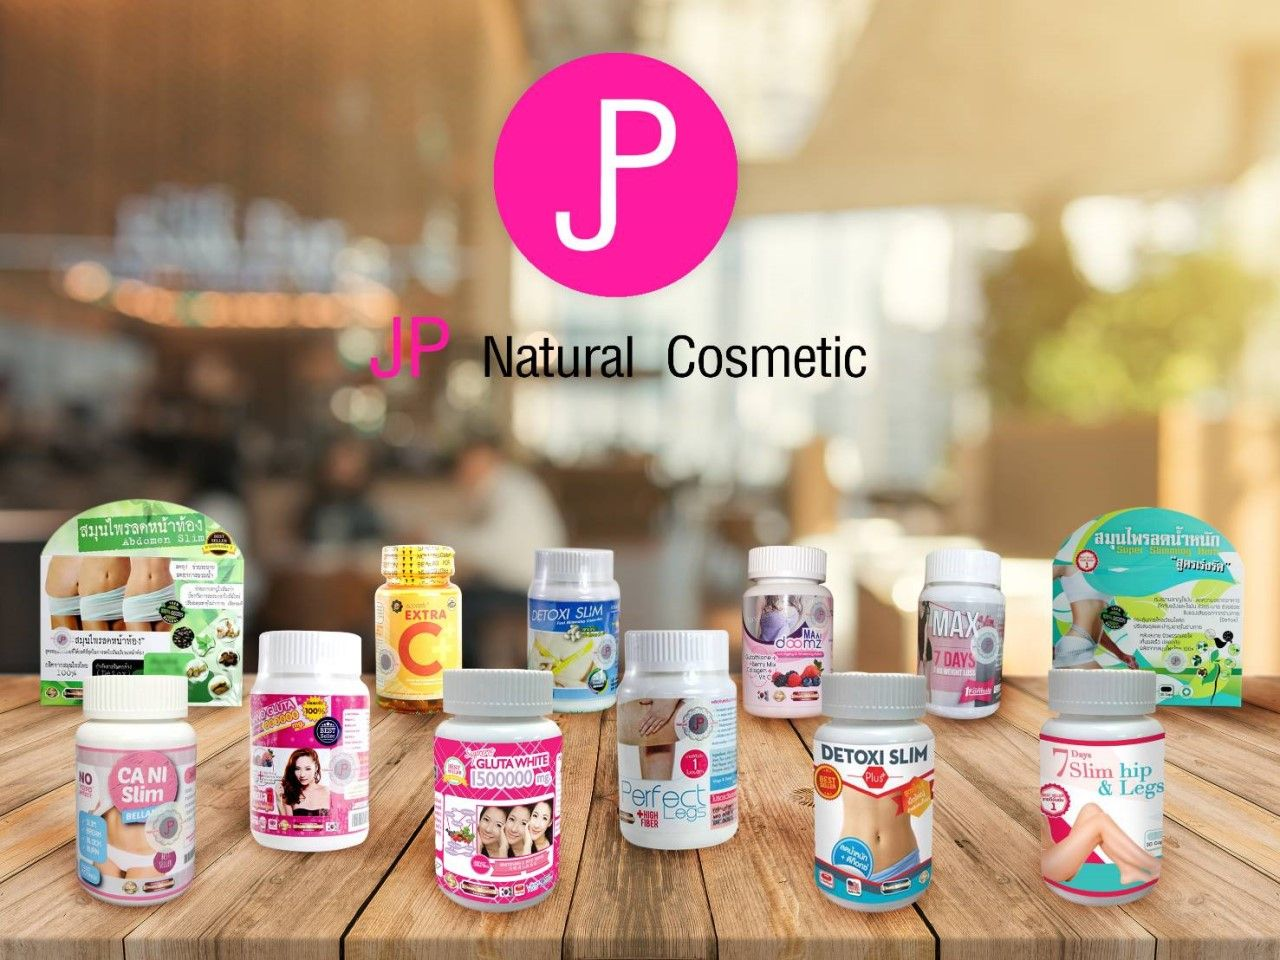 JP Natural cosmetic